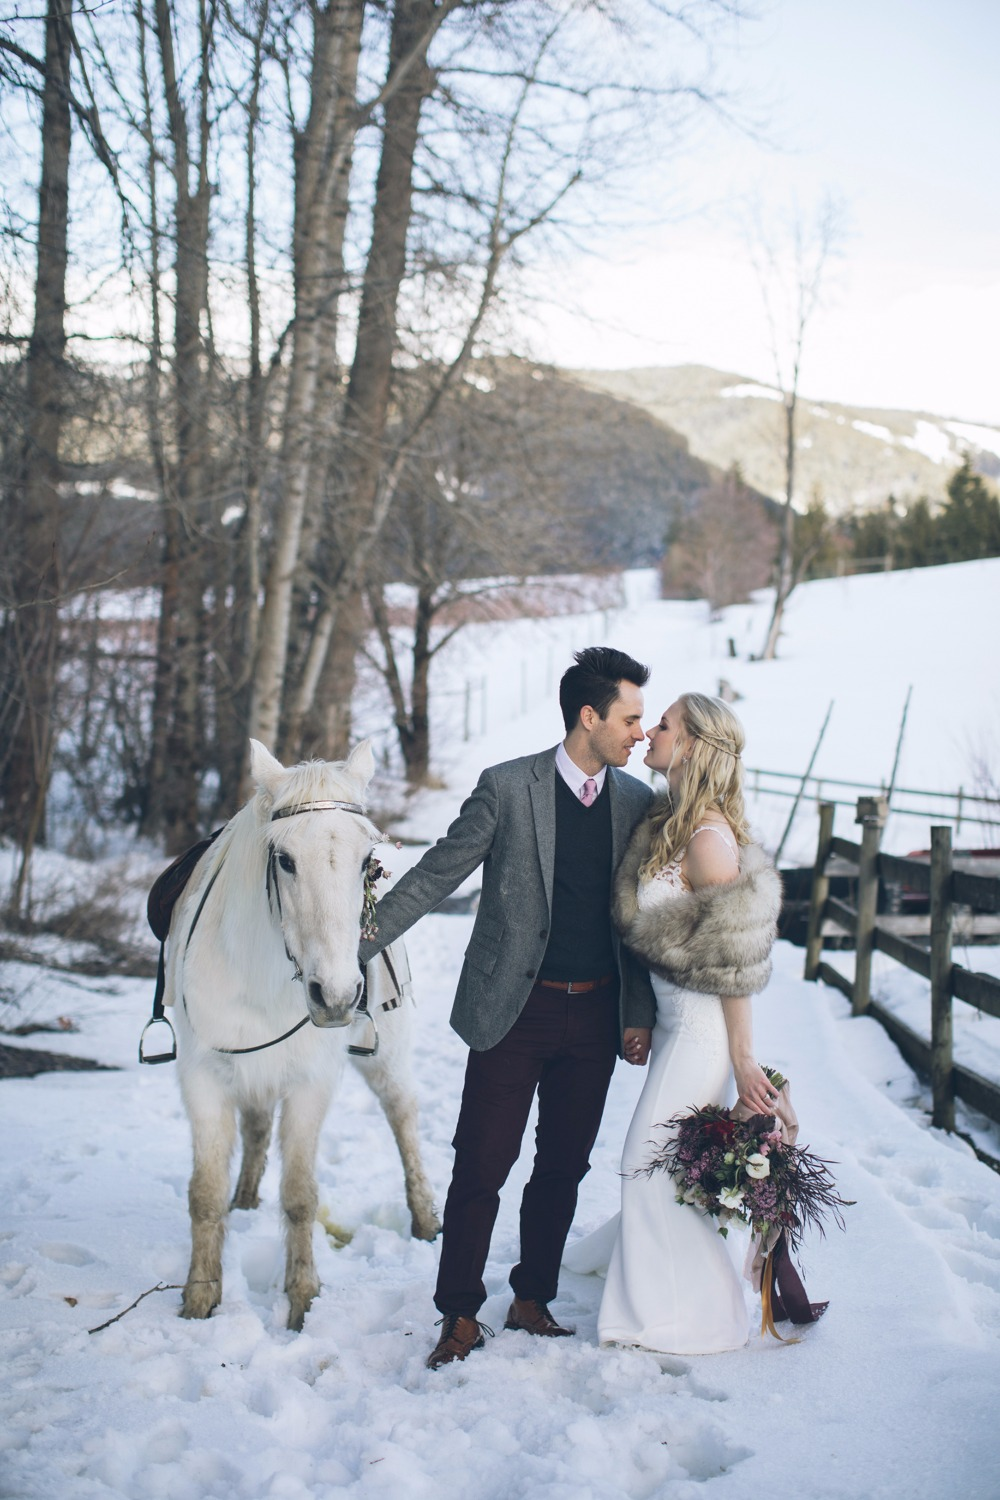 76 96 white winter wedding ideas will warm your heart